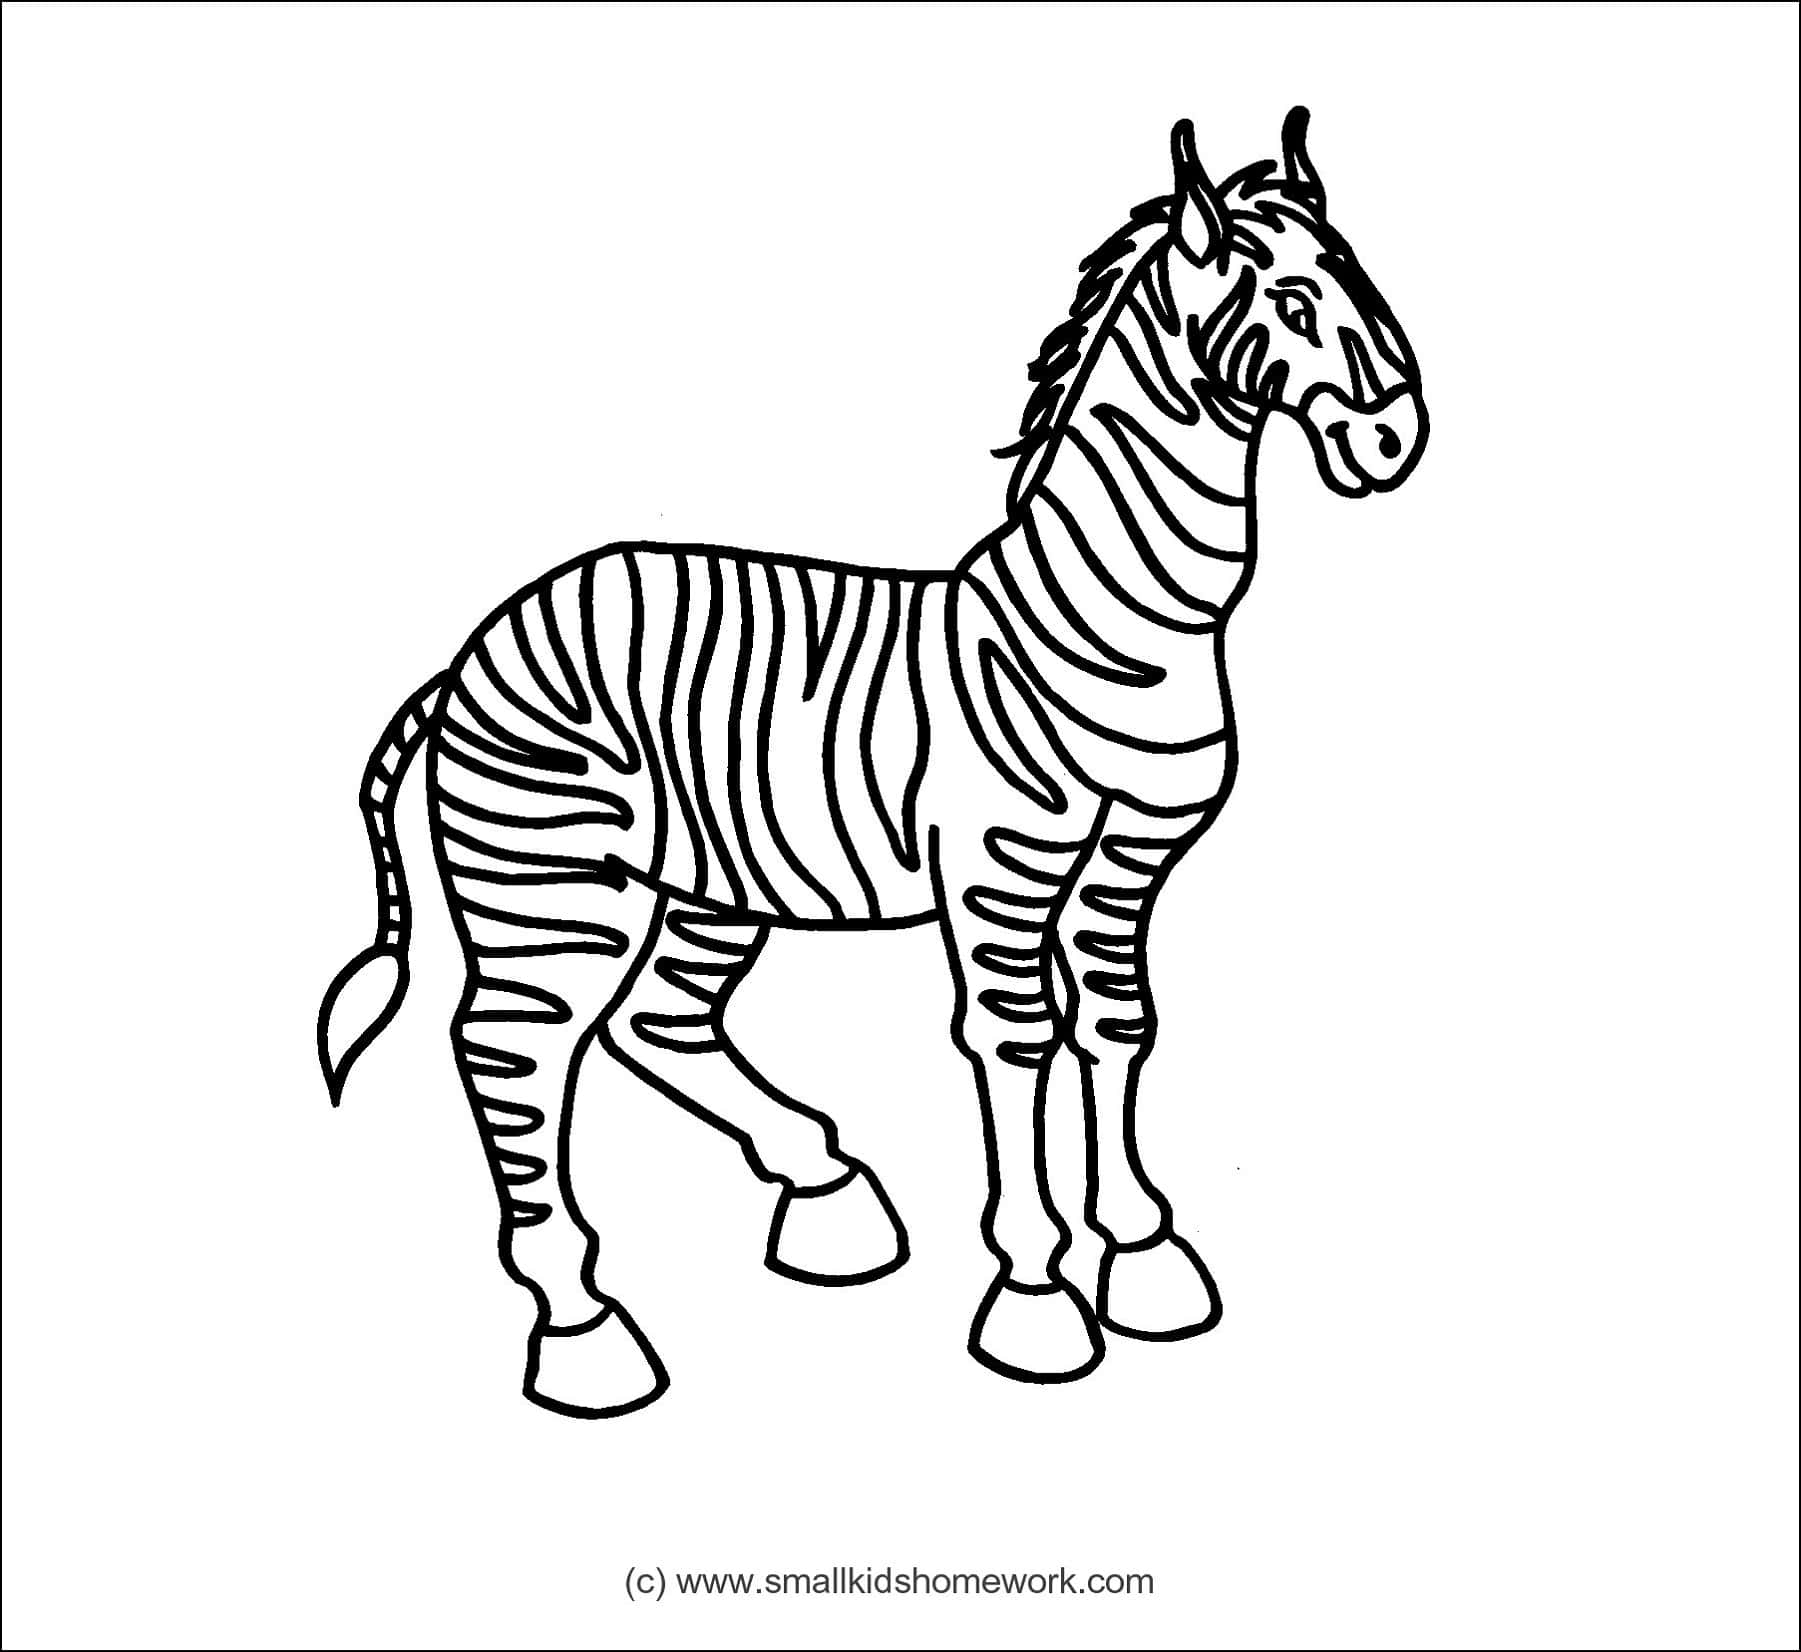 animal outlines to color free outline drawings of animals download free clip art outlines animal color to